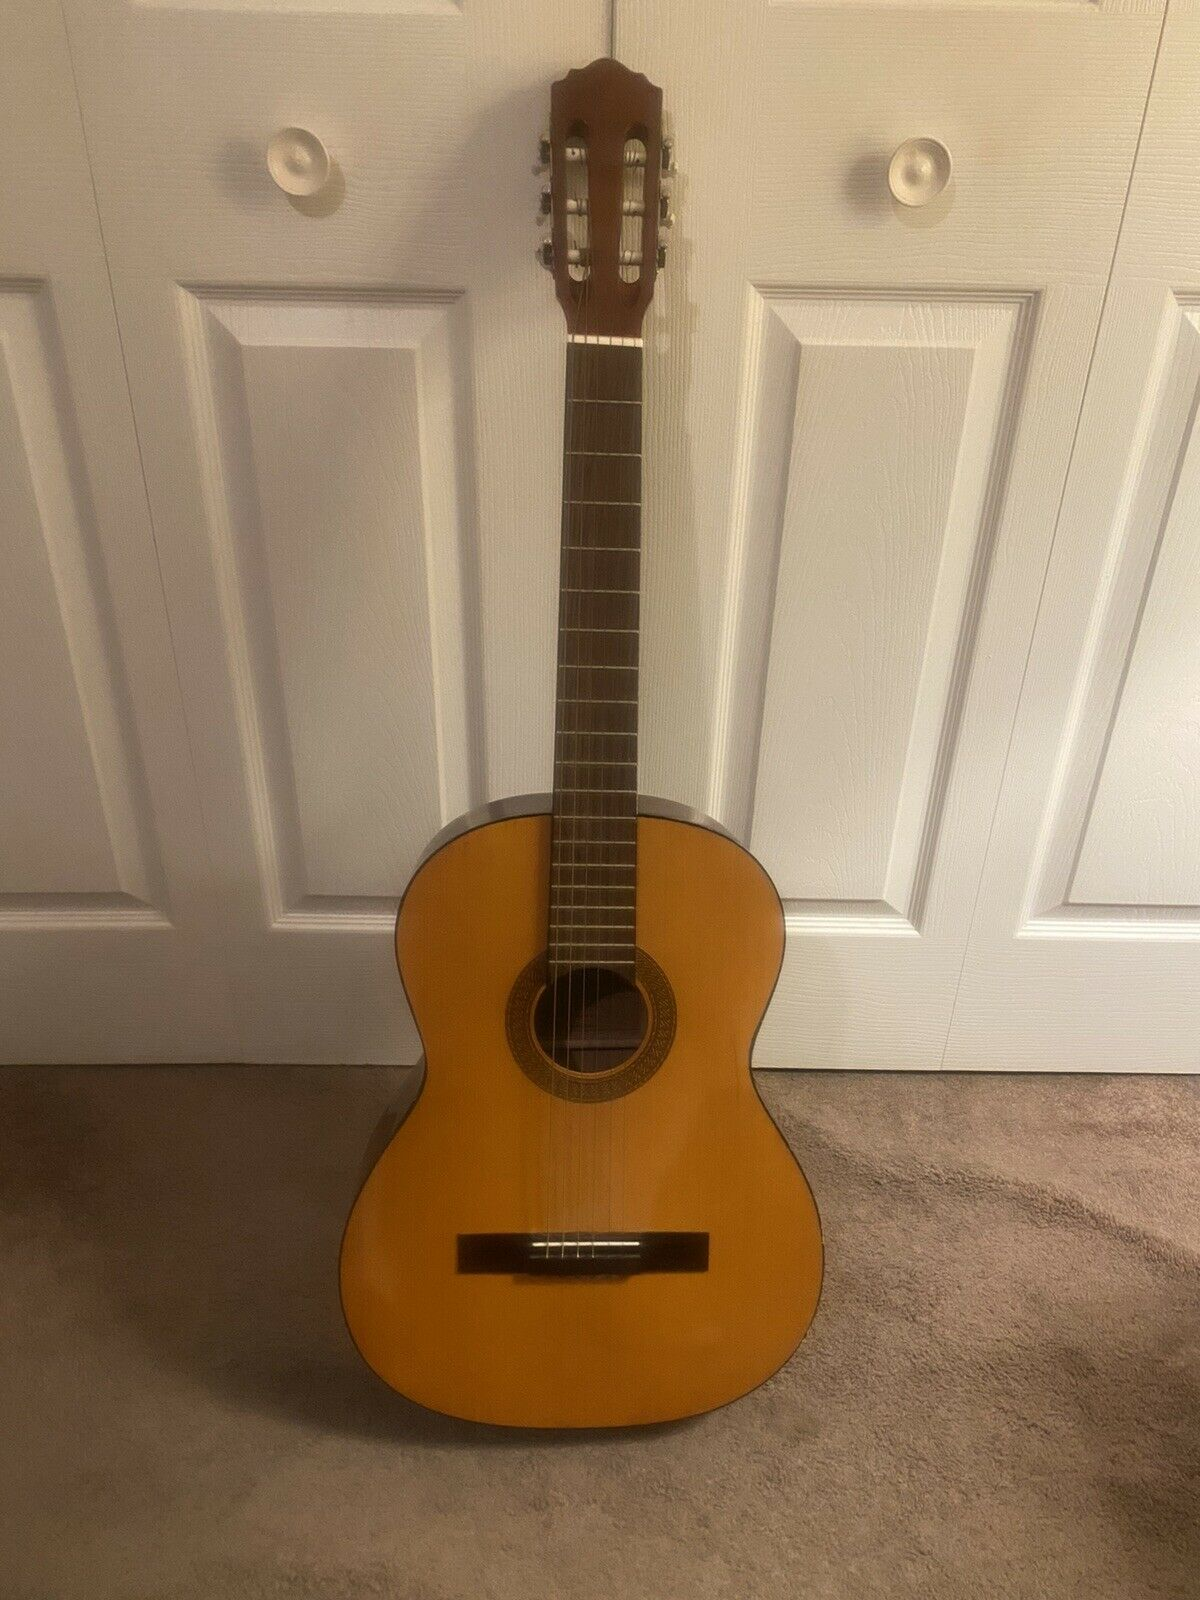 s l1600 - Vintage (1960's) Alvarez Hand Made Classic Guitars Model No 4103 Acoustic Guitar